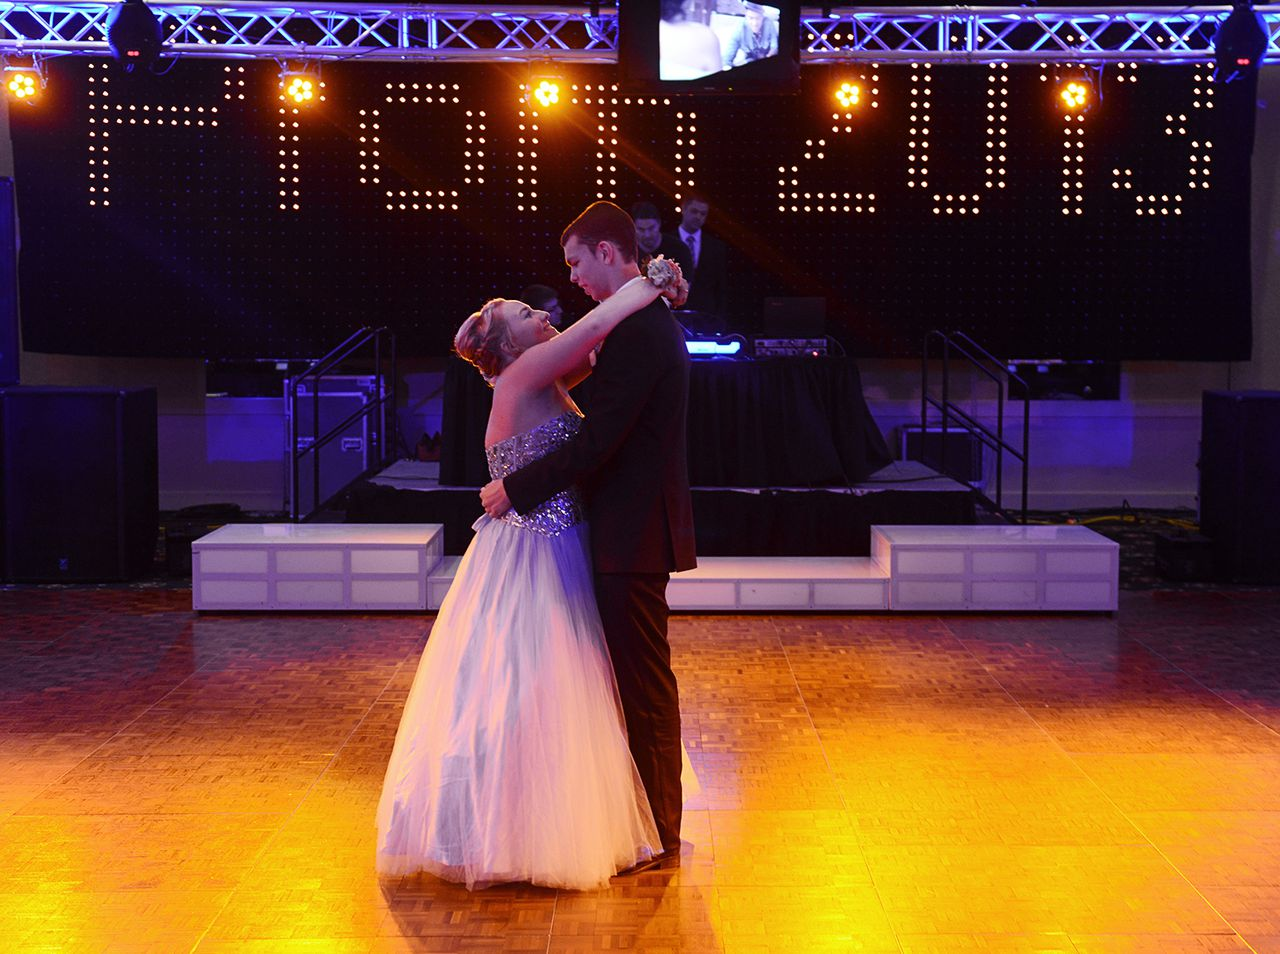 Katlyn Gardner,17 of Middleburg Heights and Pat Ryan,16 of Brooklyn dance in the ball room at the Lacentre in Westlake for the Midpark Prom on Friday night. (Kyle Lanzer/Sun News)